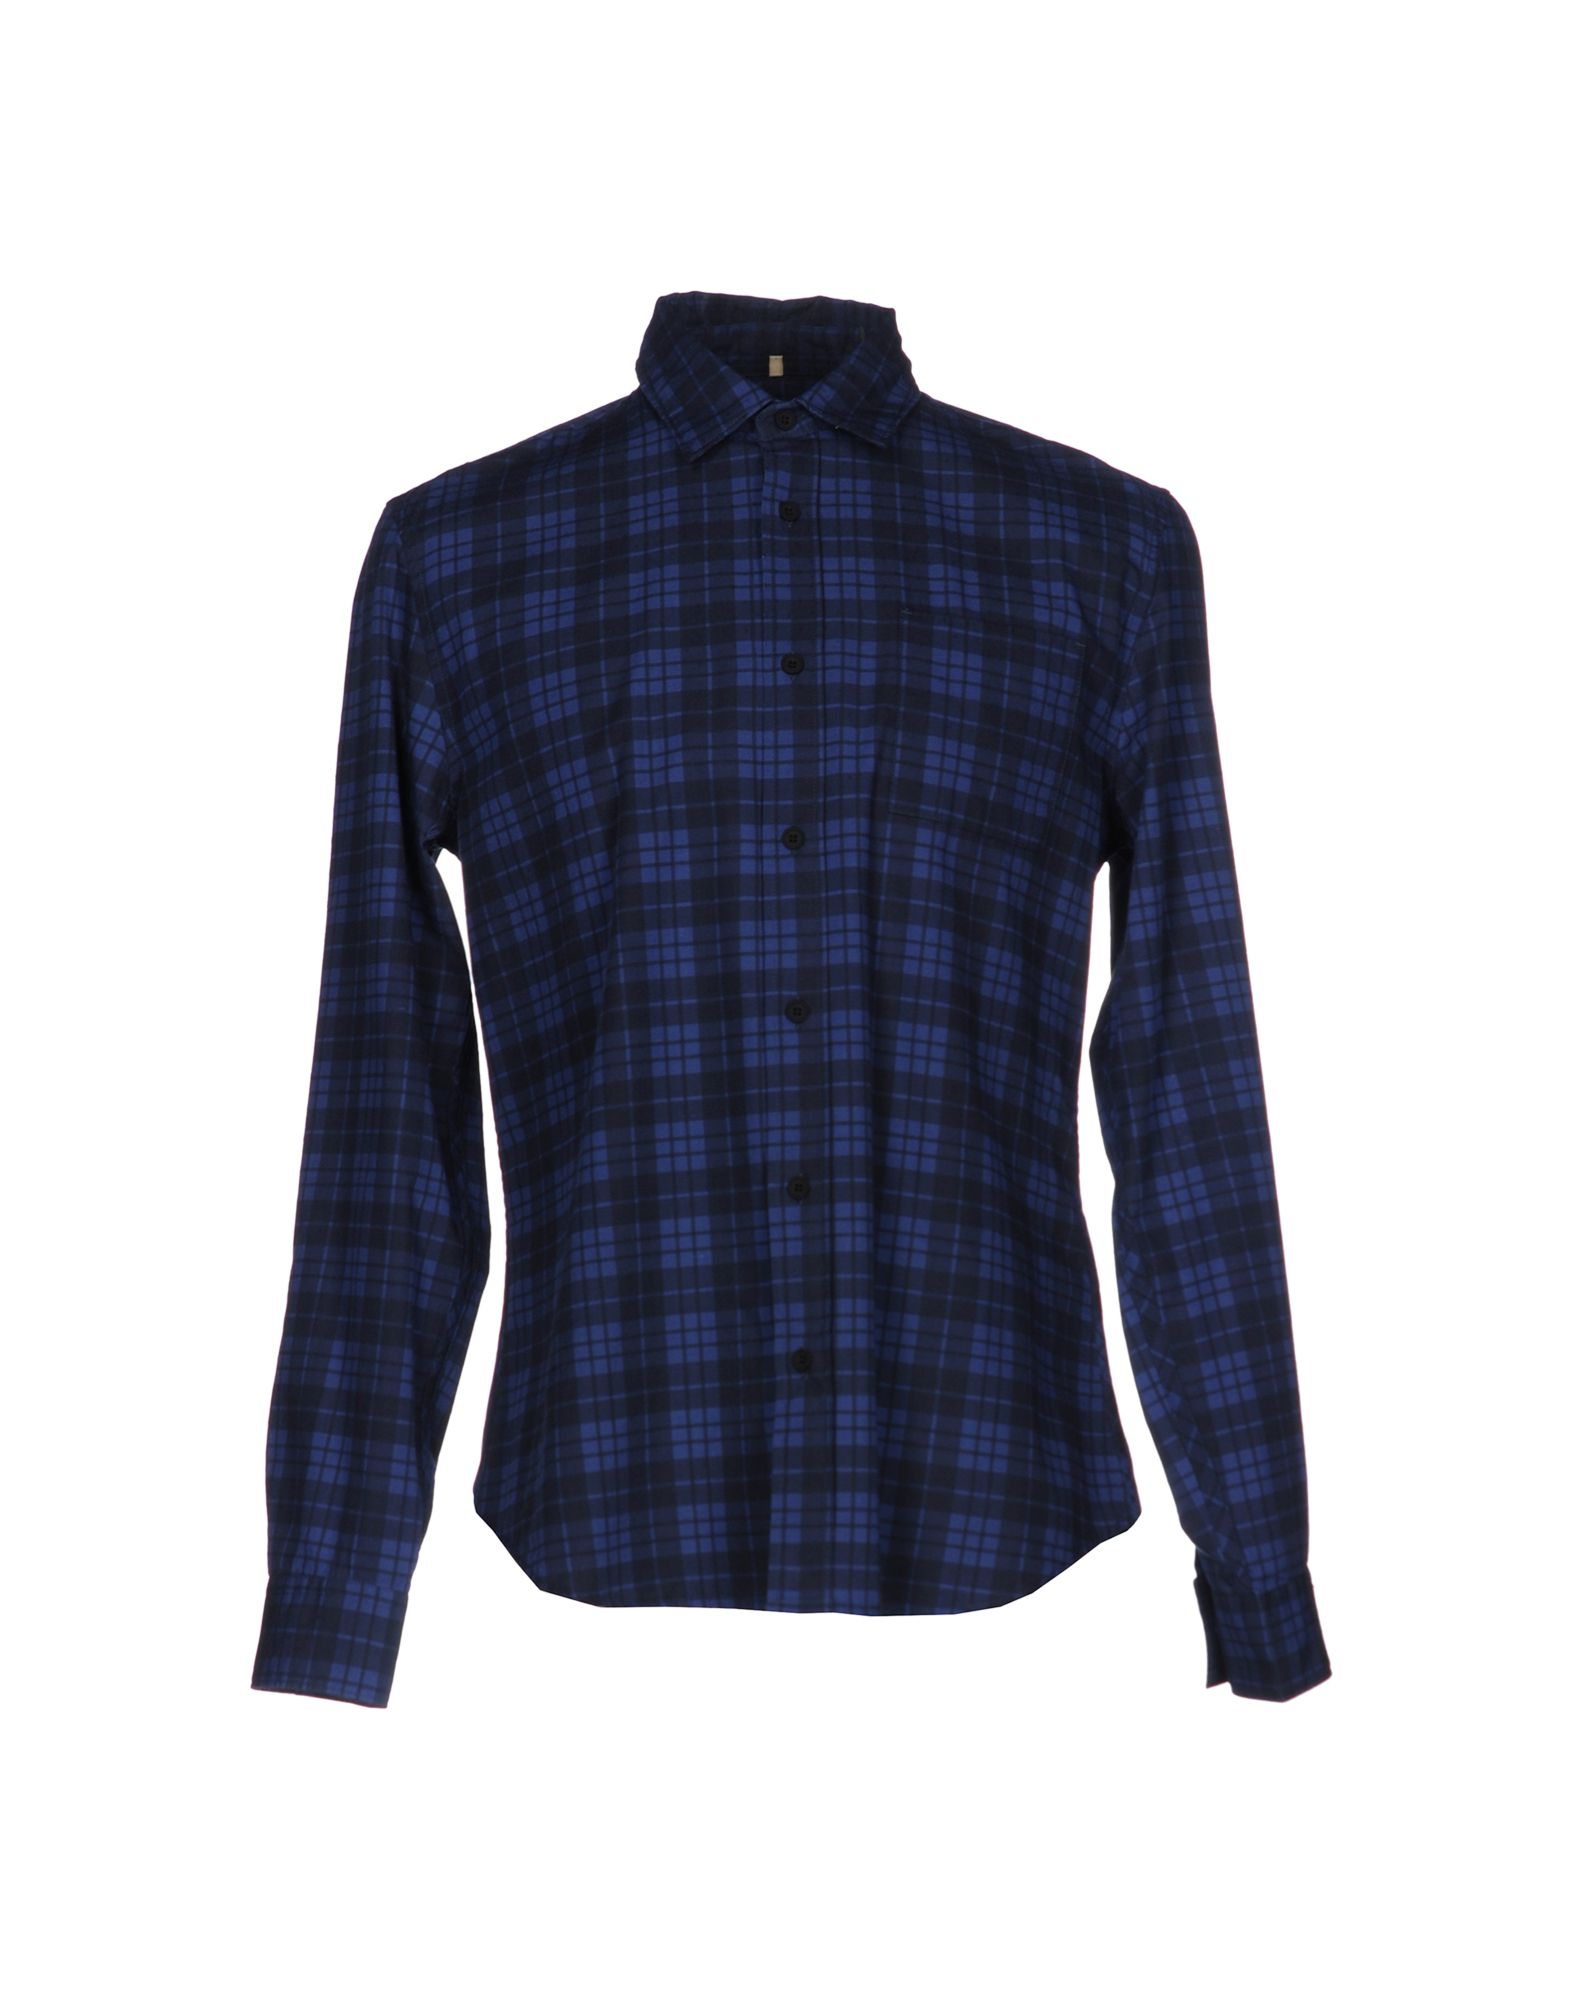 Levi 39 S Made Crafted Levi 39 S Made Crafted Shirts